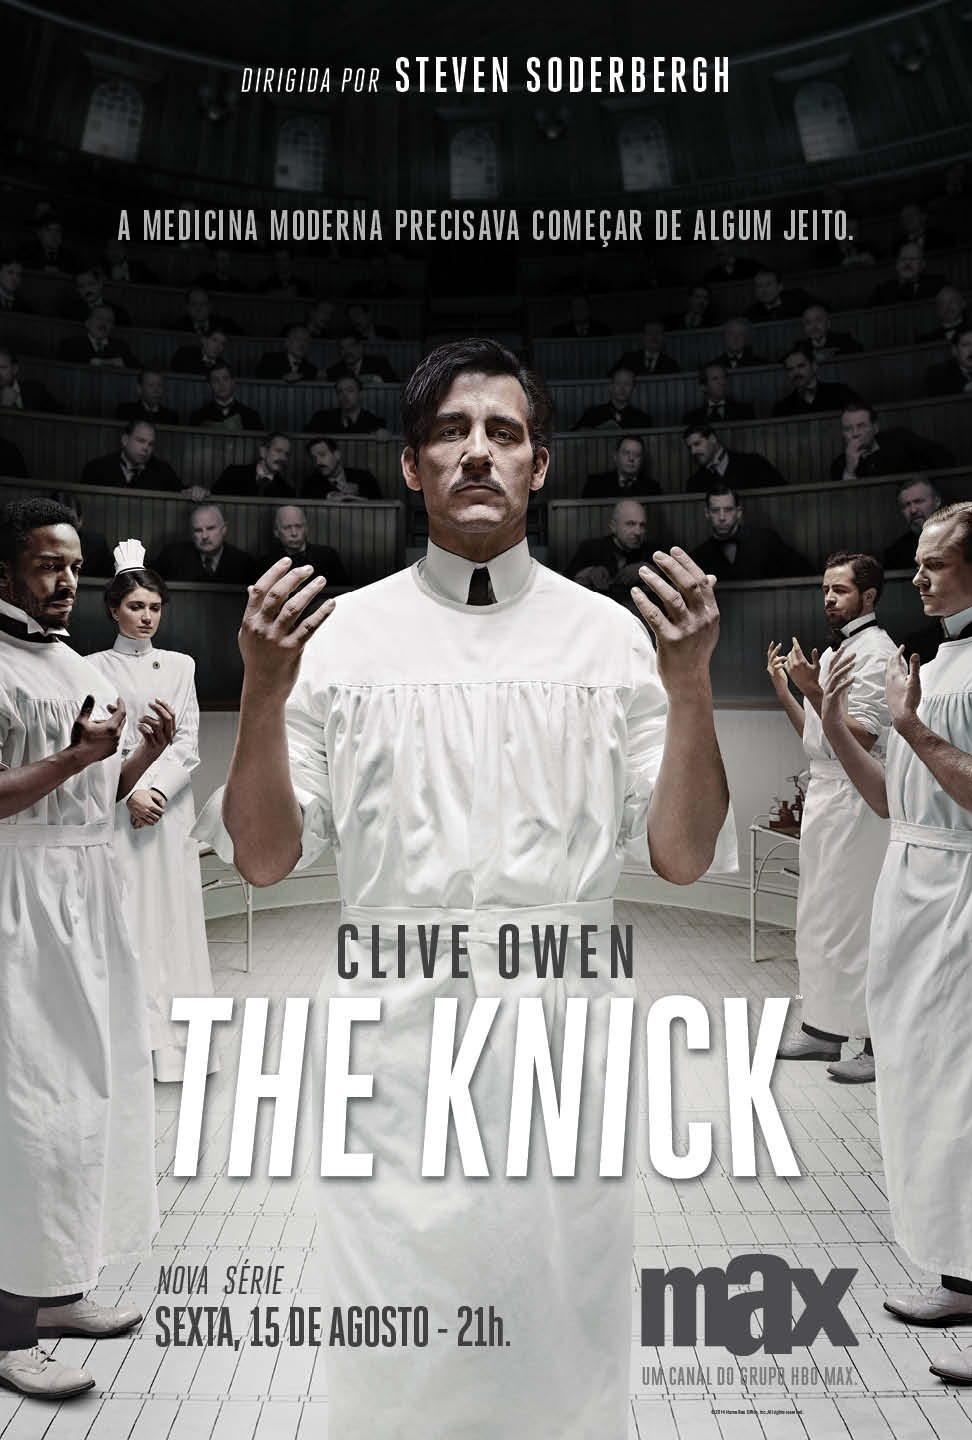 The Knick-Season 1-PROMO PHOTOS-04AGOSTO2014-01